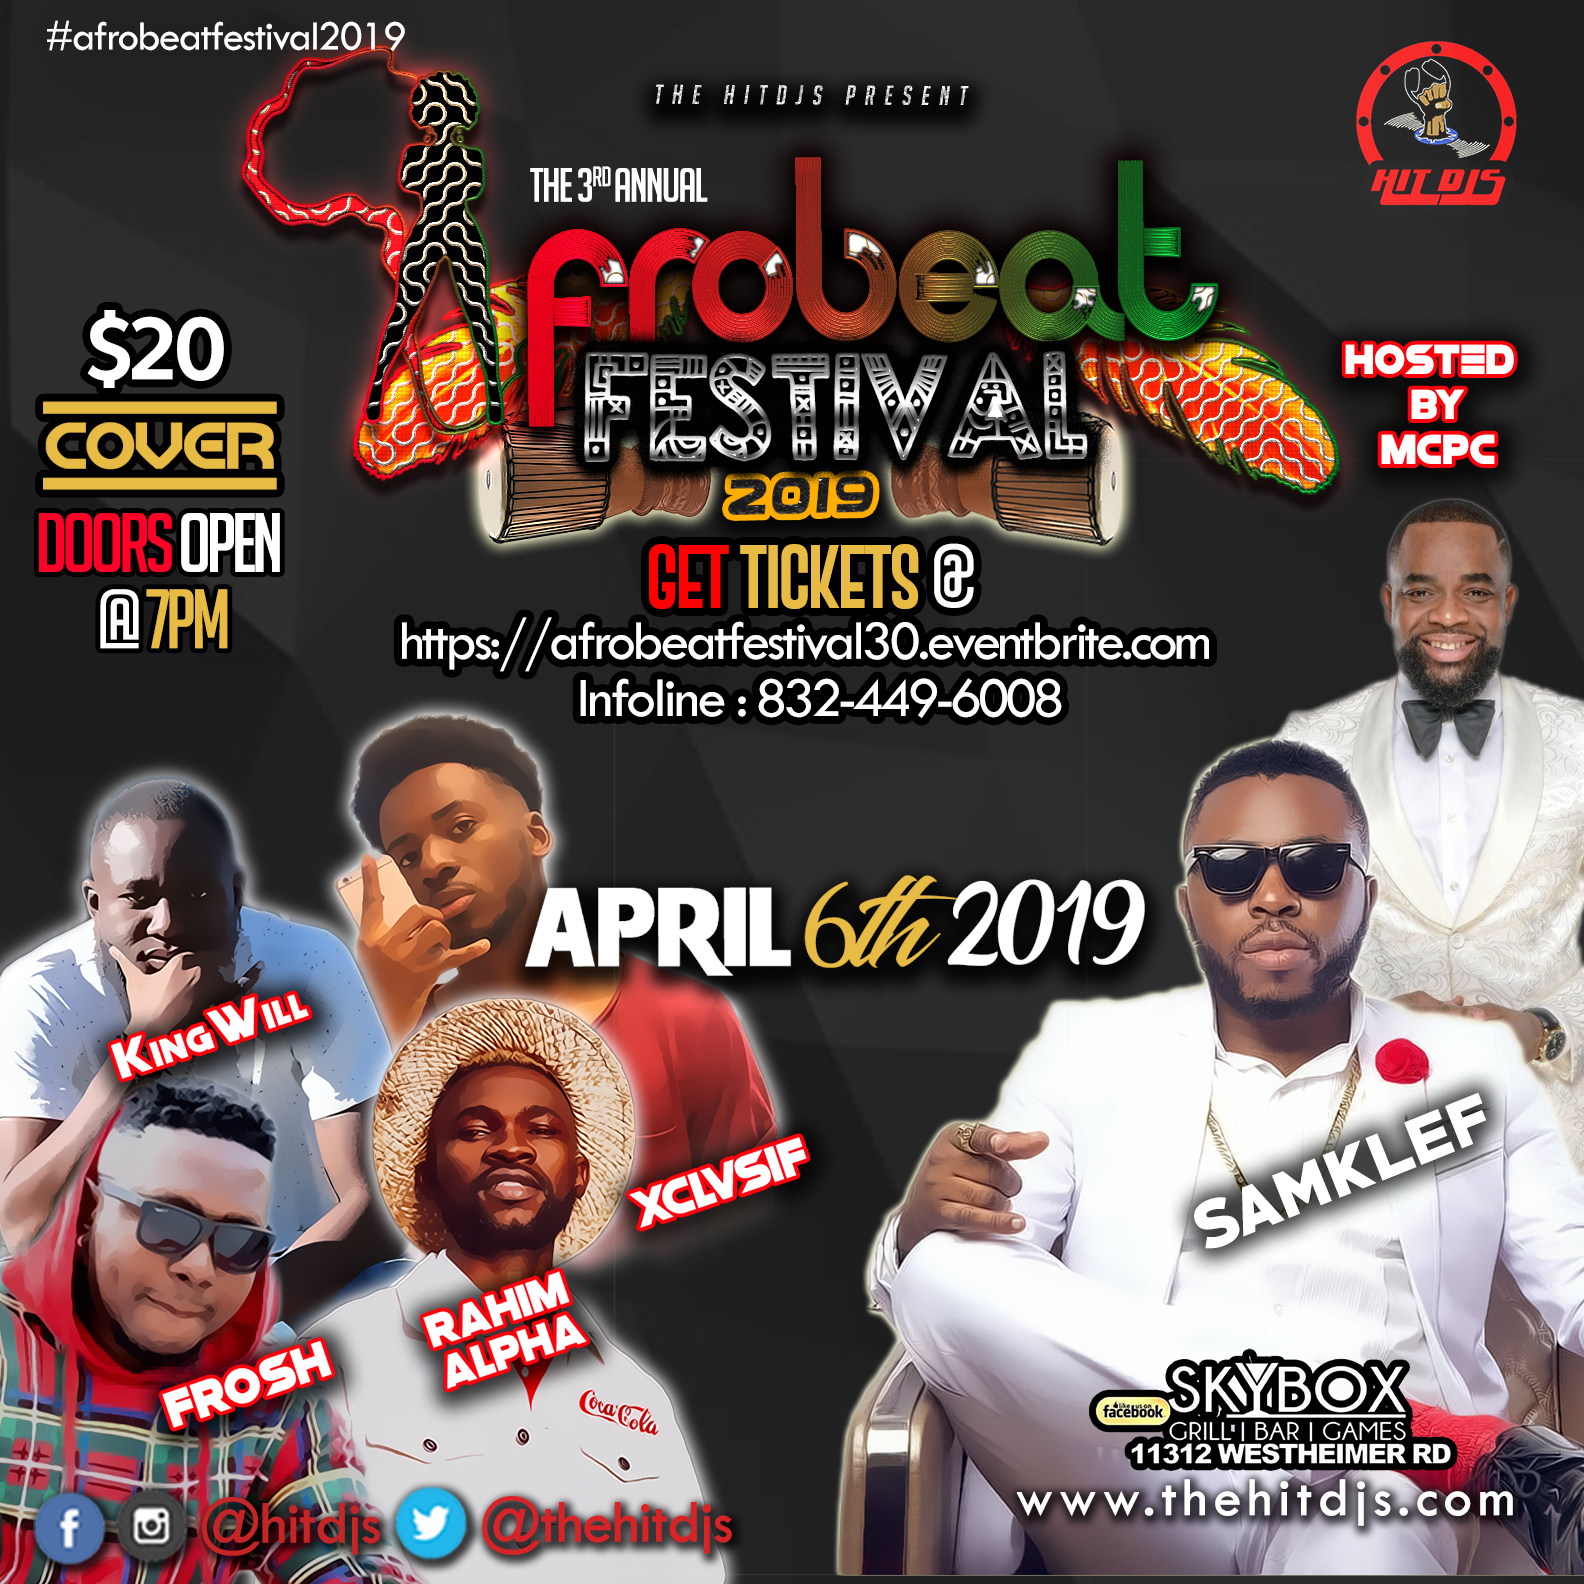 AFROBEAT FESTIVAL 3 0 - APRIL 6TH 2019 – HitDjs